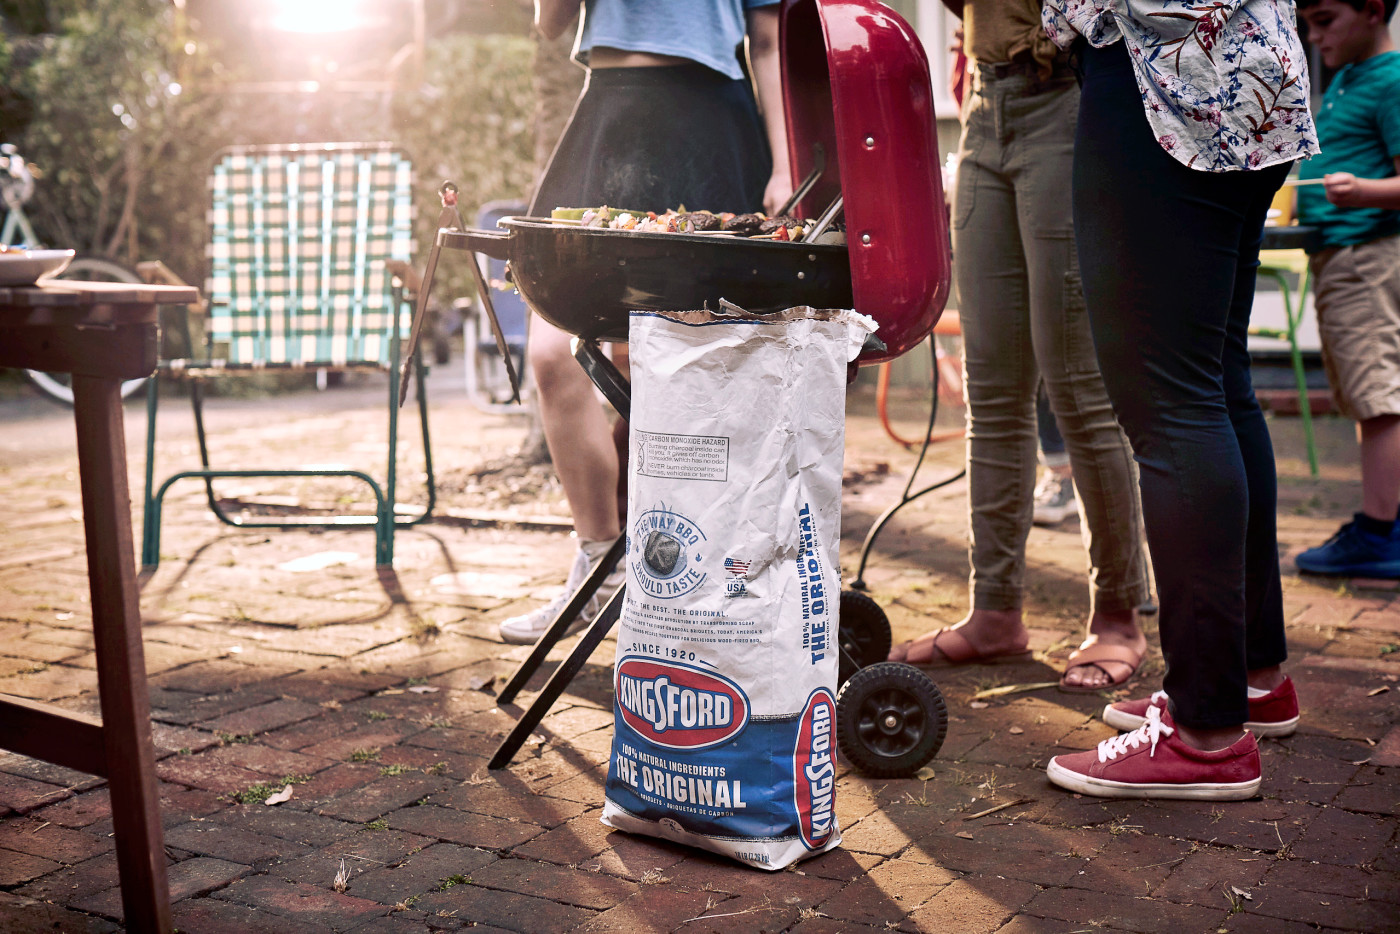 Kingsford Charcoal Fourth of July